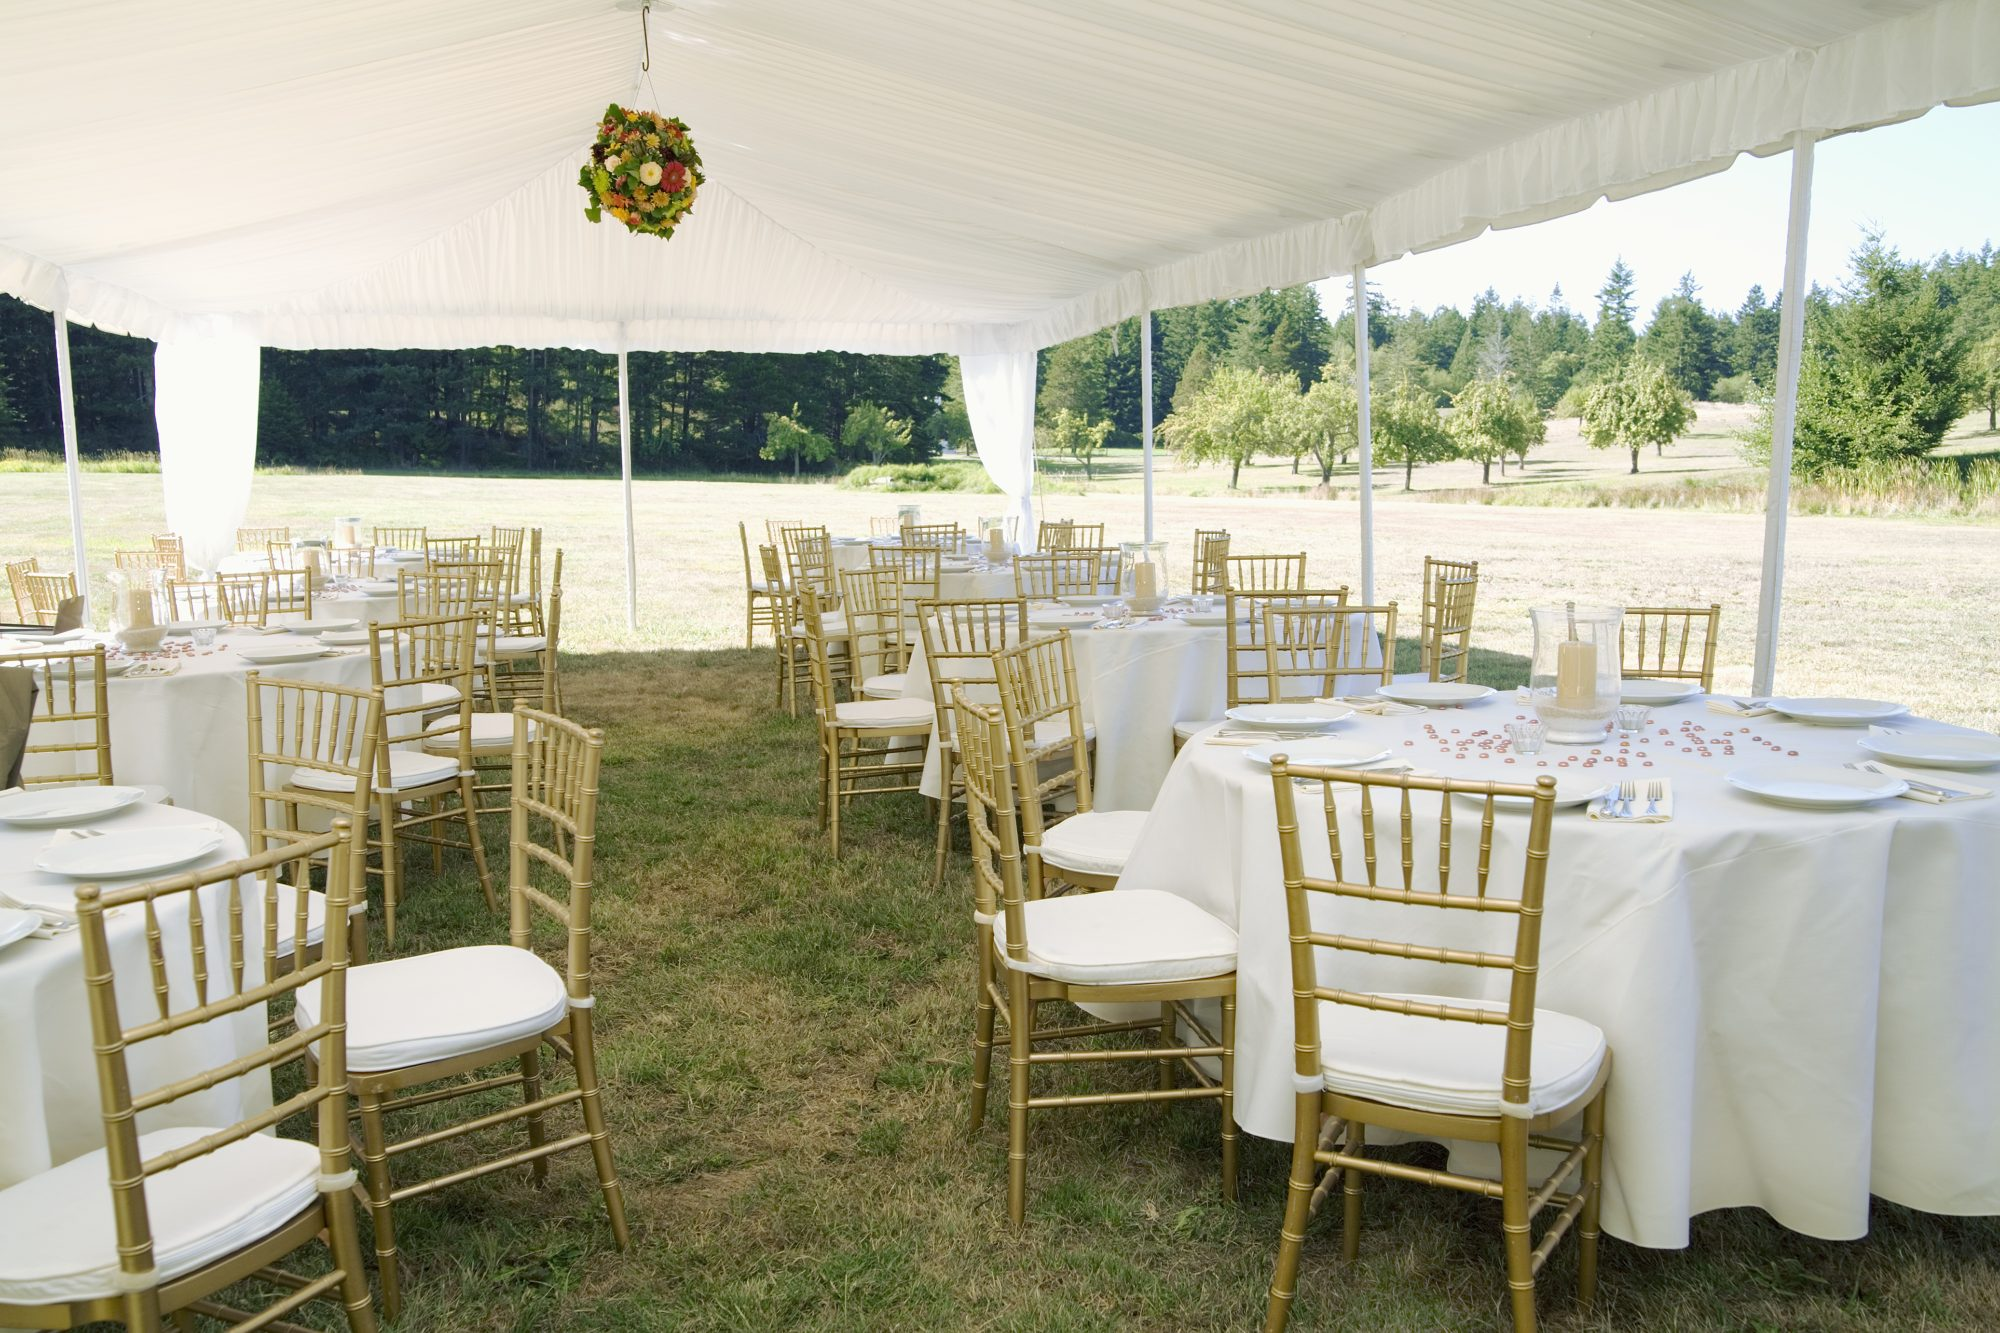 How to Plan a 2021 Wedding, According to Experts: tables and chairs in an outdoor tent